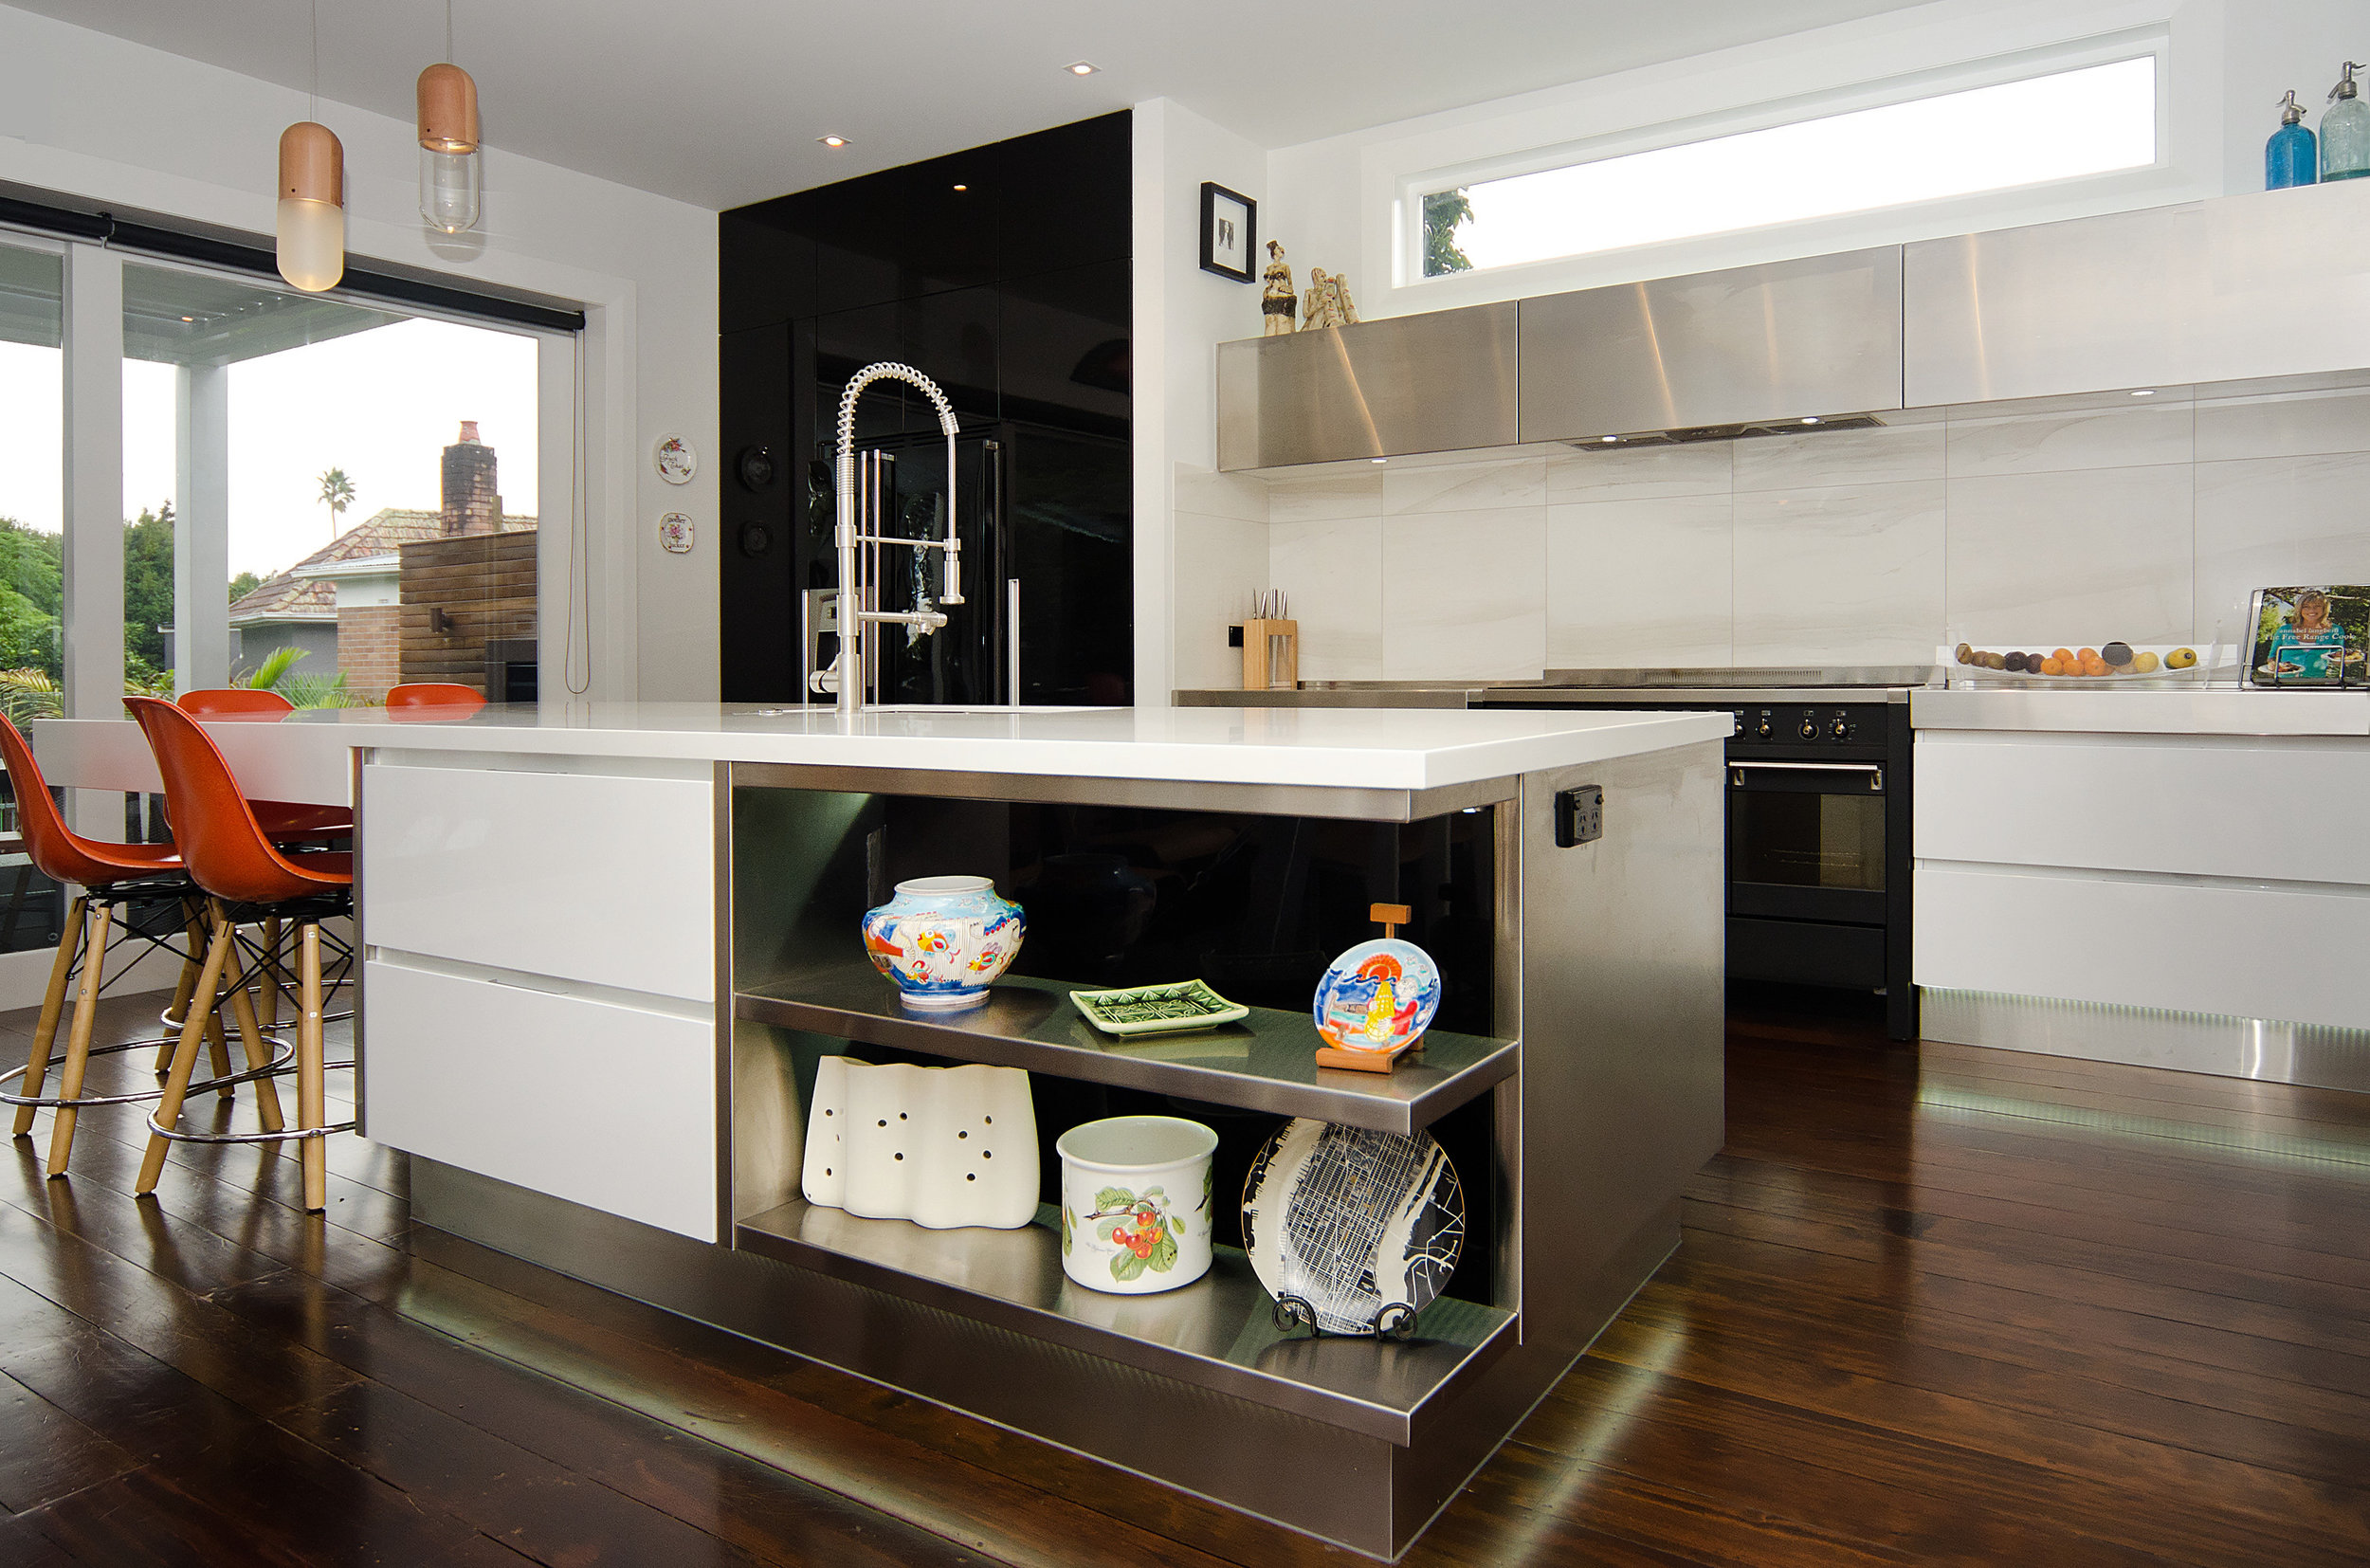 Bellevue Rd 1-kitchen -14p_DxO.jpg